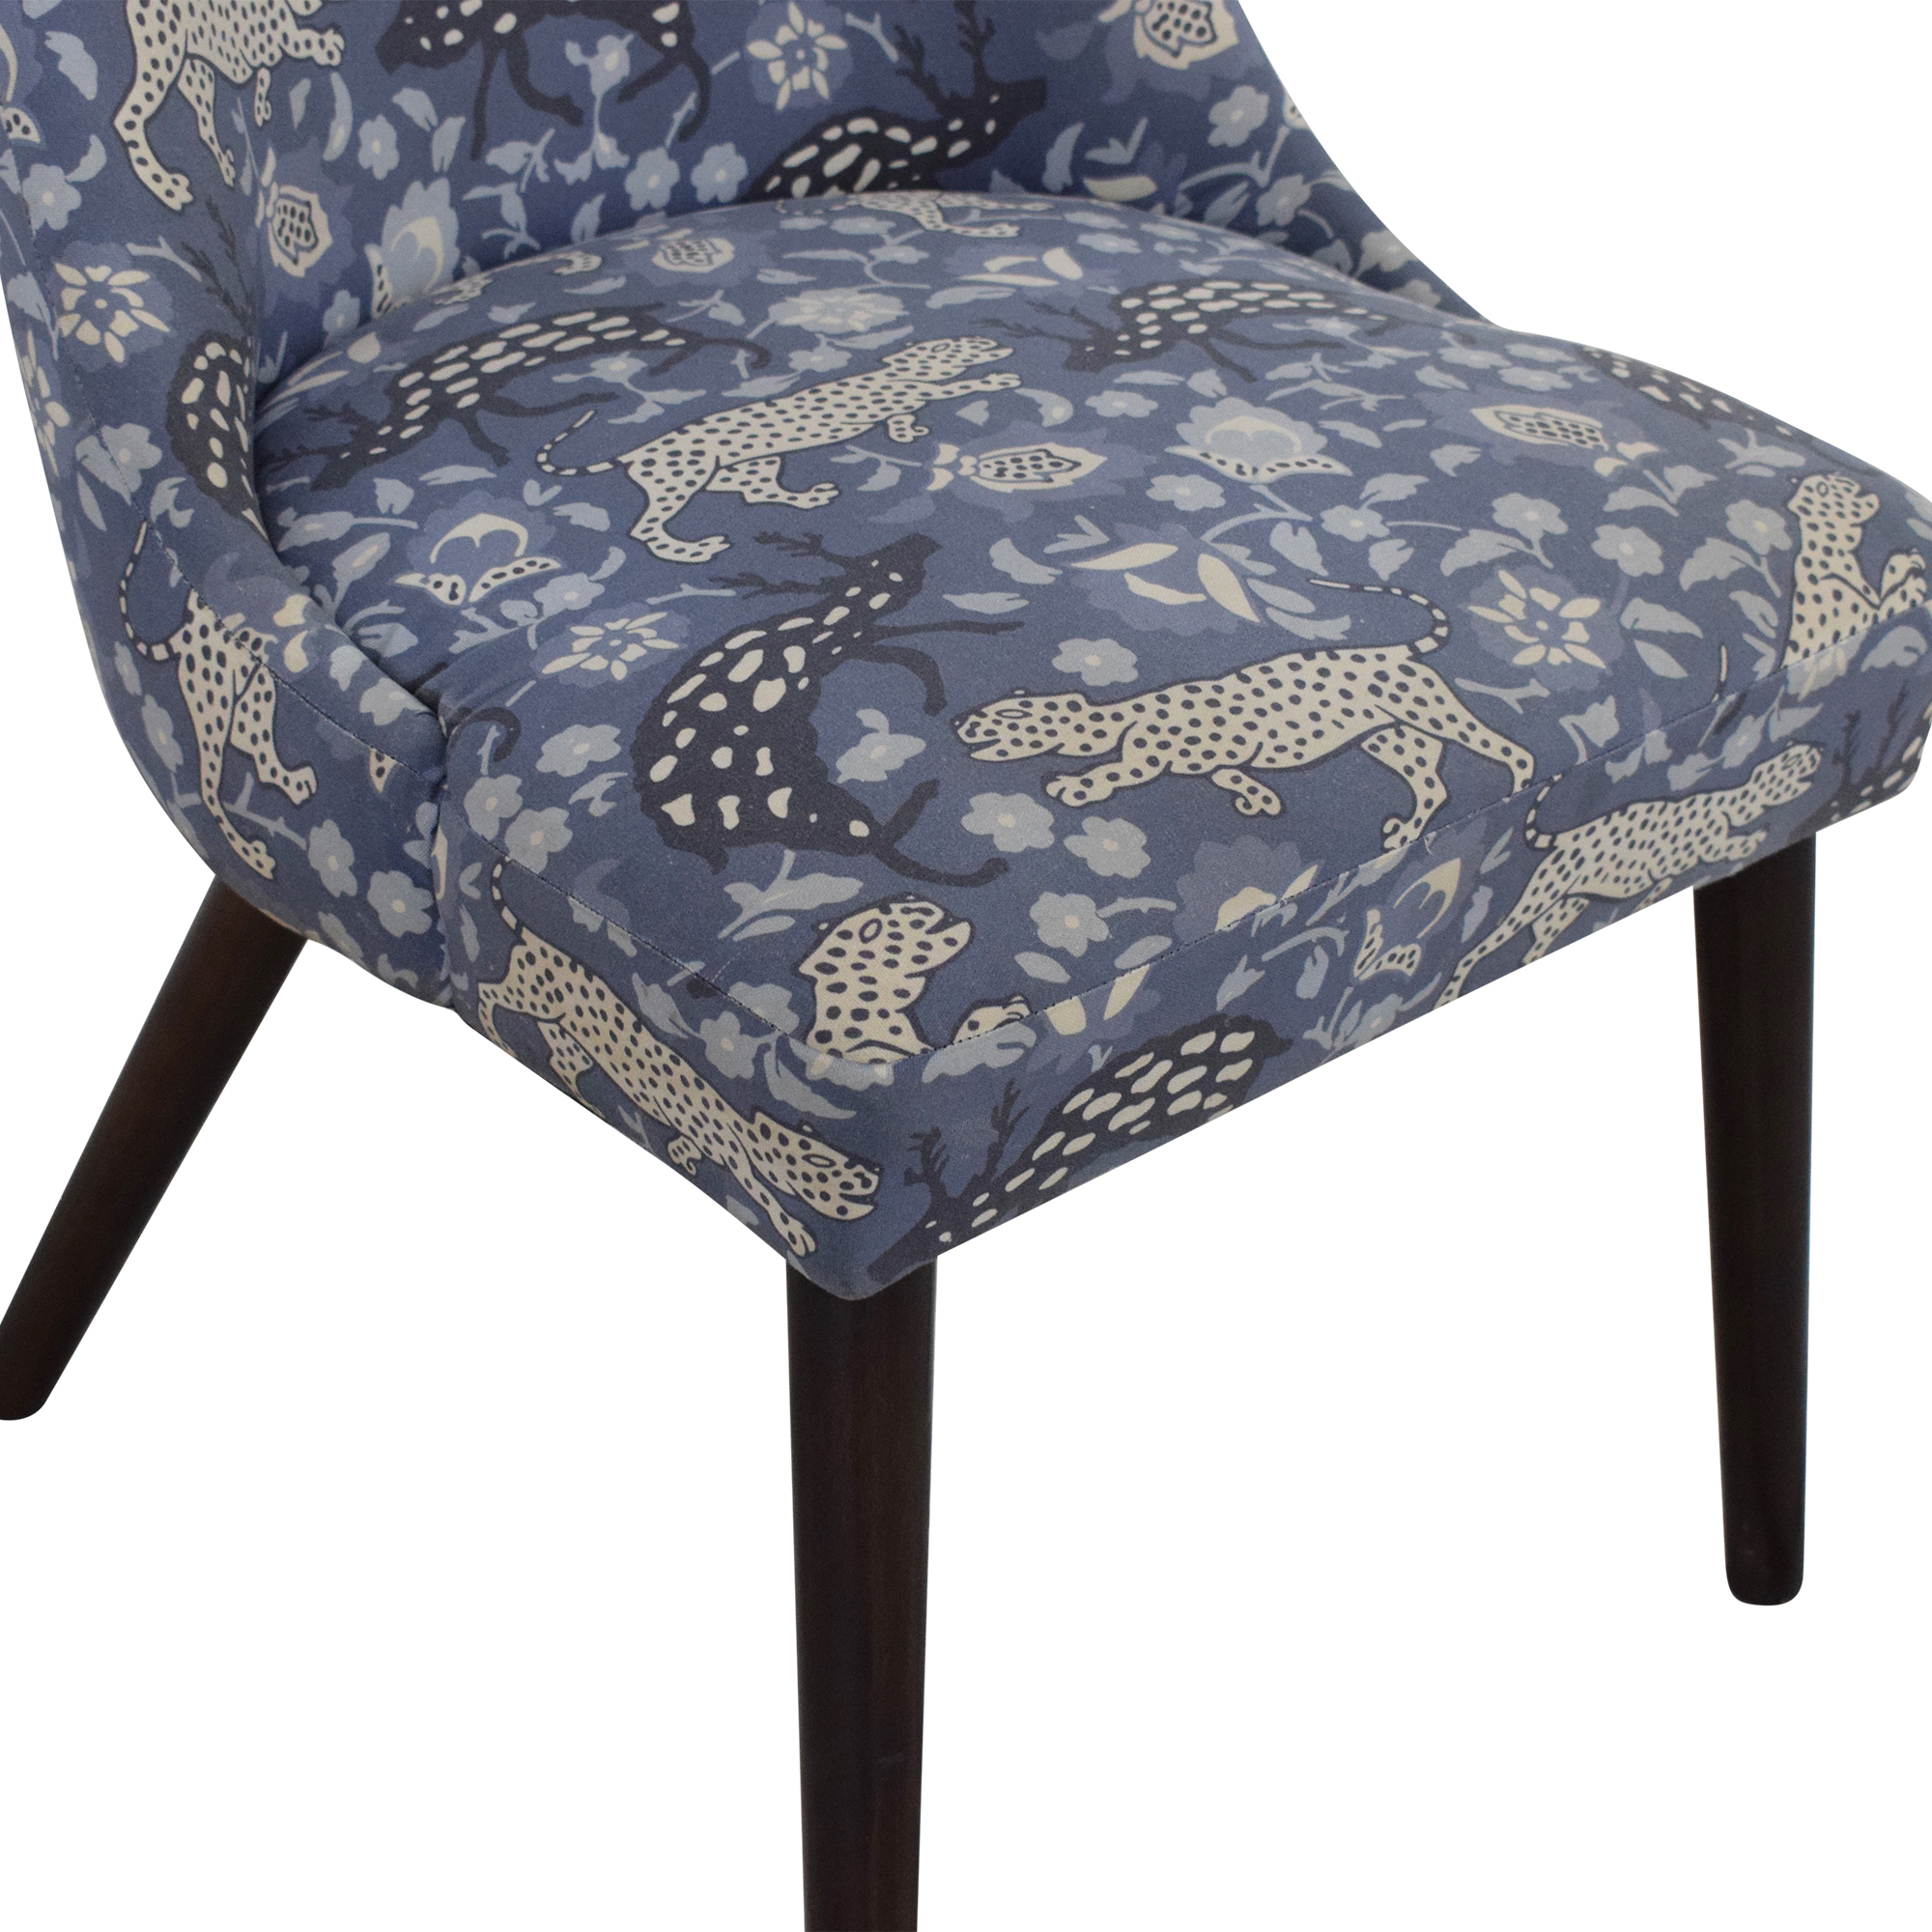 buy Skyline Patterned Upholstered Dining Chair Skyline Furniture Chairs